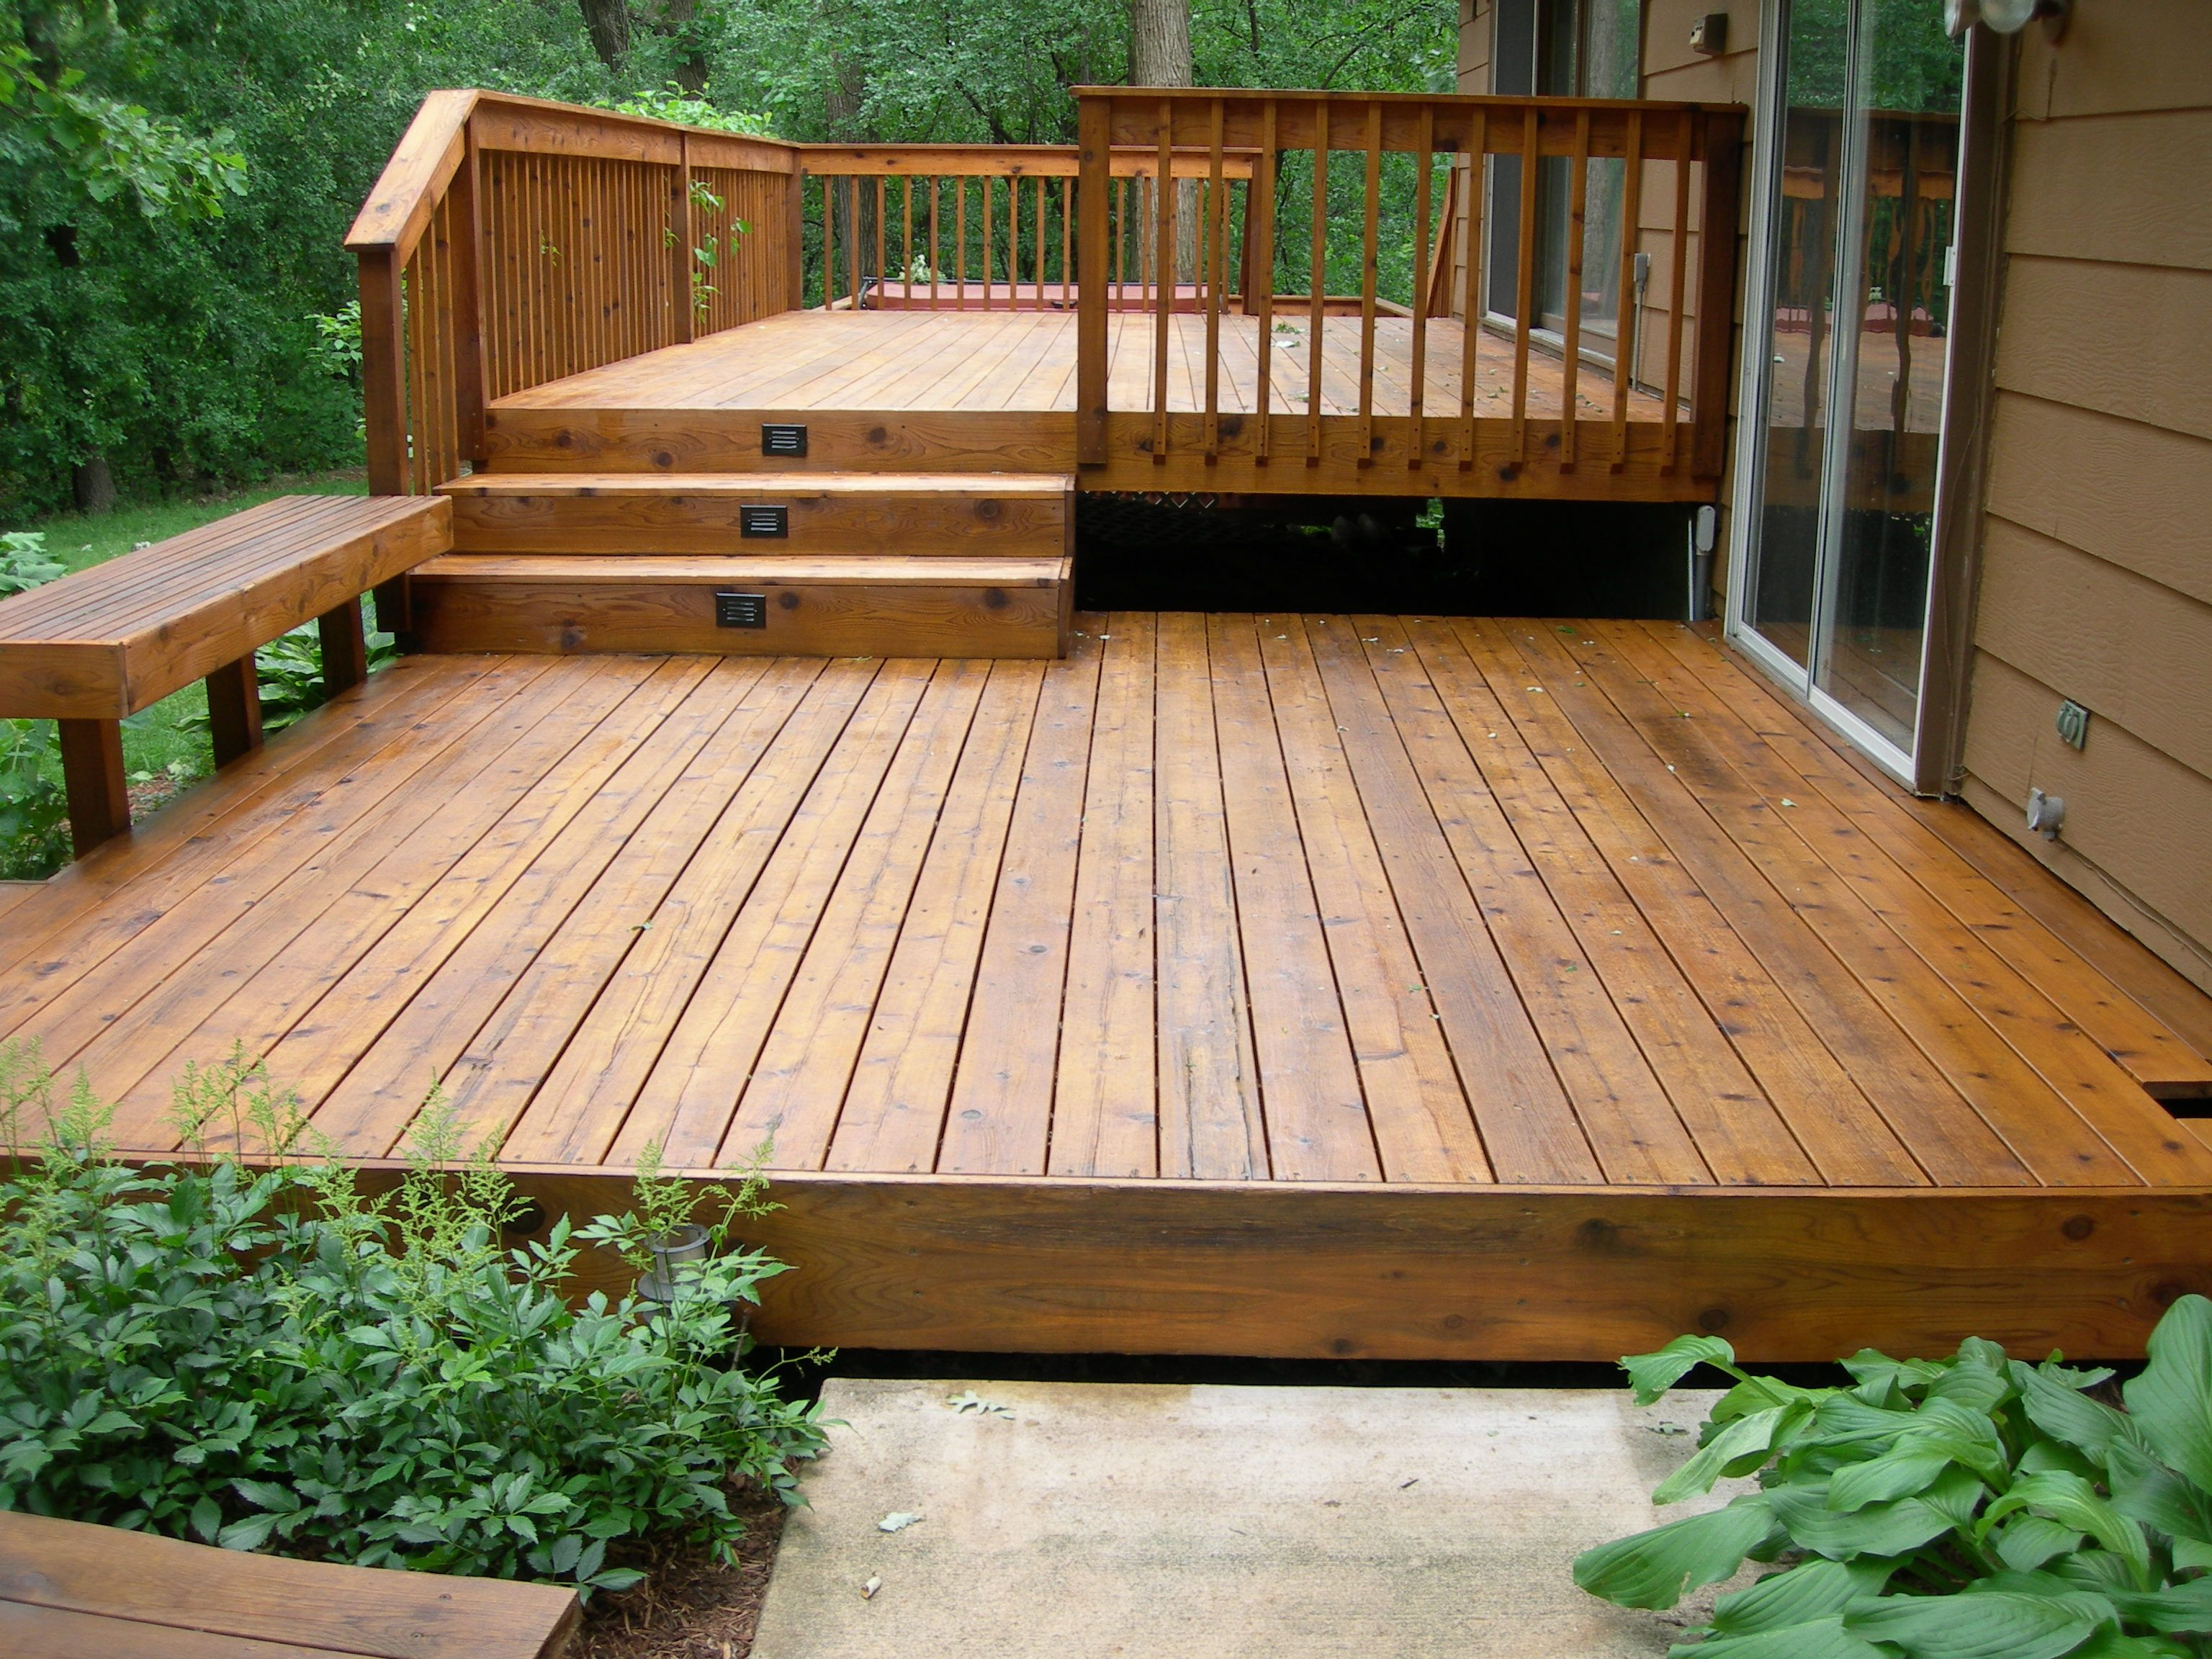 Ba Backyard Patio Deck Ideas - Flooring pictures of decks design idea pictures of decks for patio design outdoor deck construction deck designers quality paint plus floorings